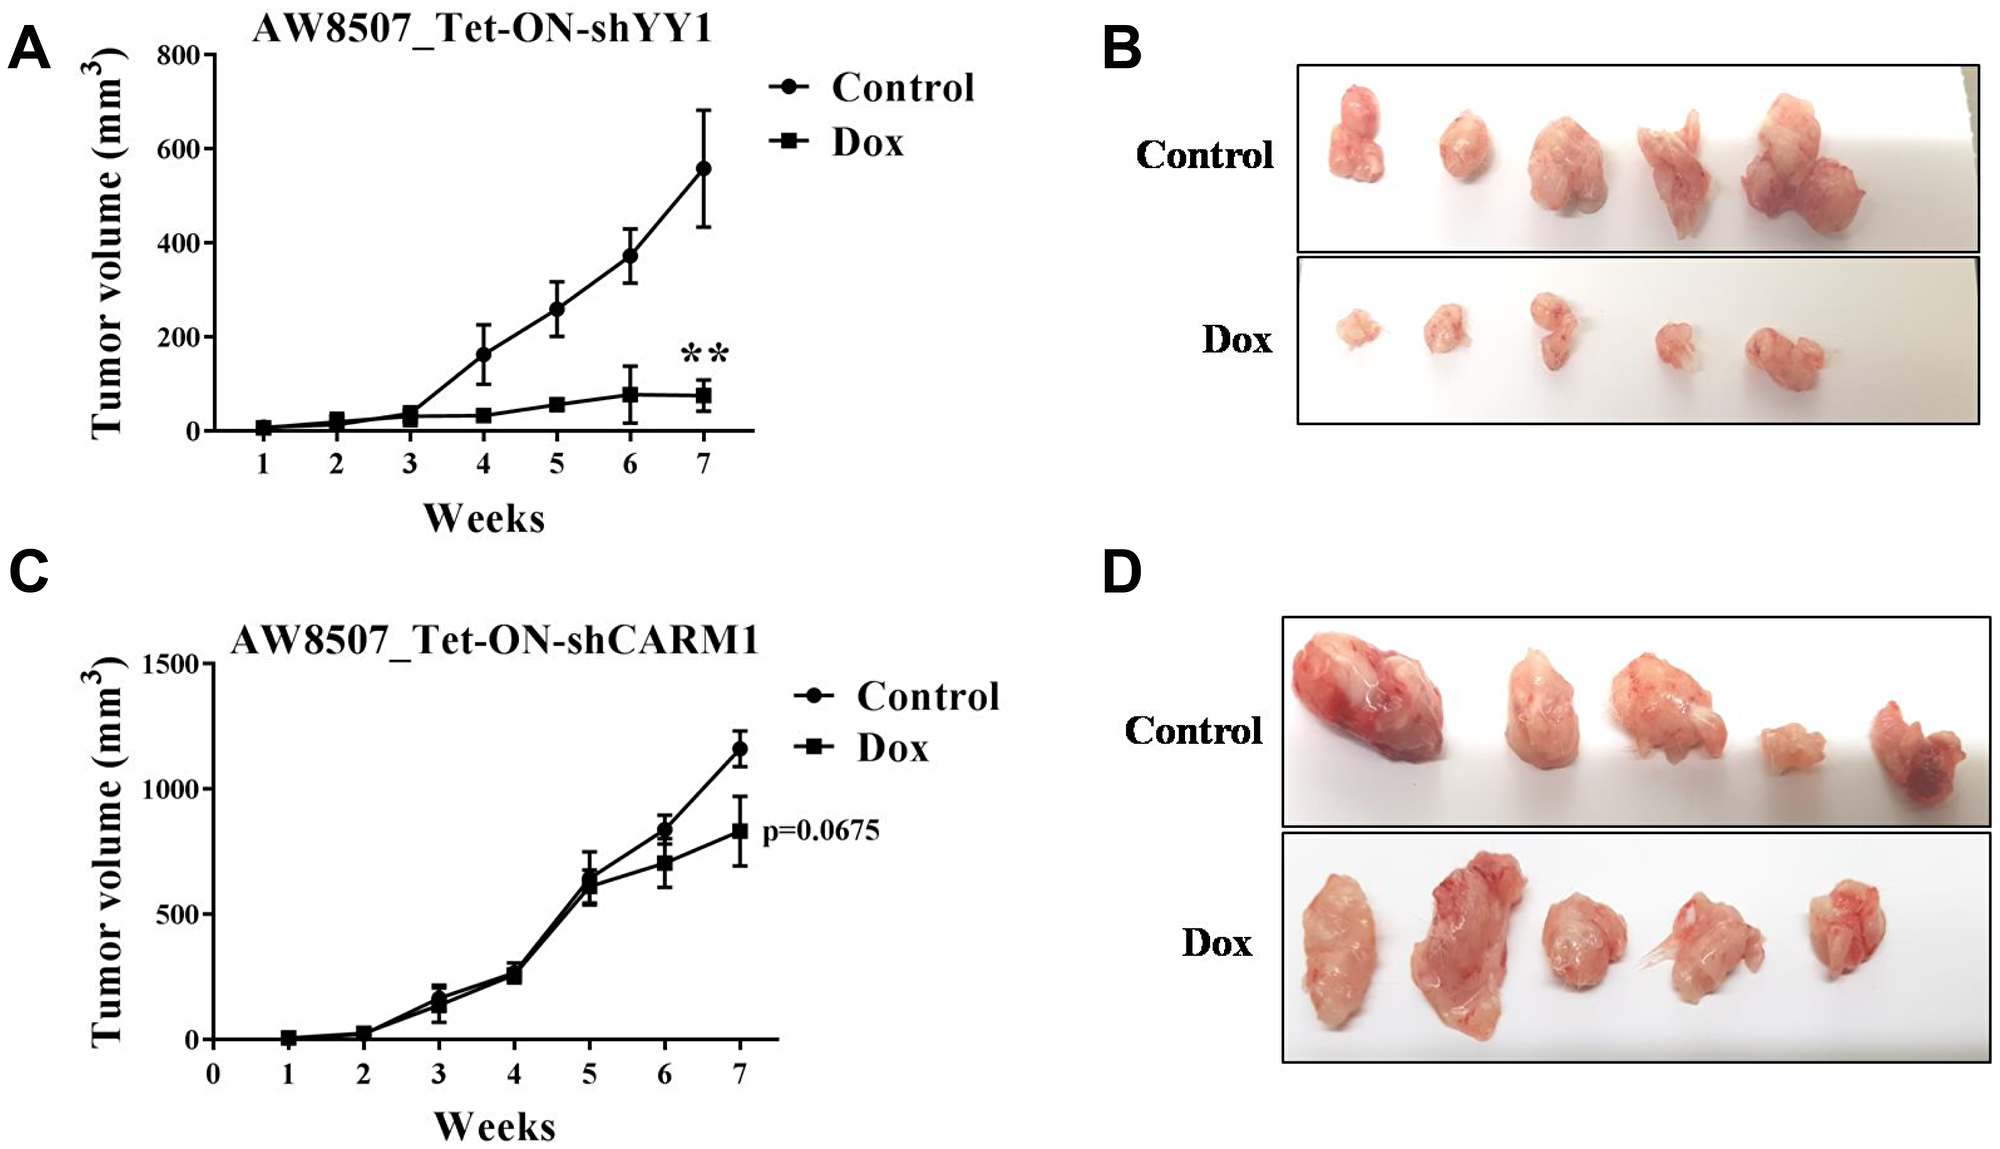 Xenograft study in nude mice with inducible silencing of YY1 and CARM1 in oral cancer cells.